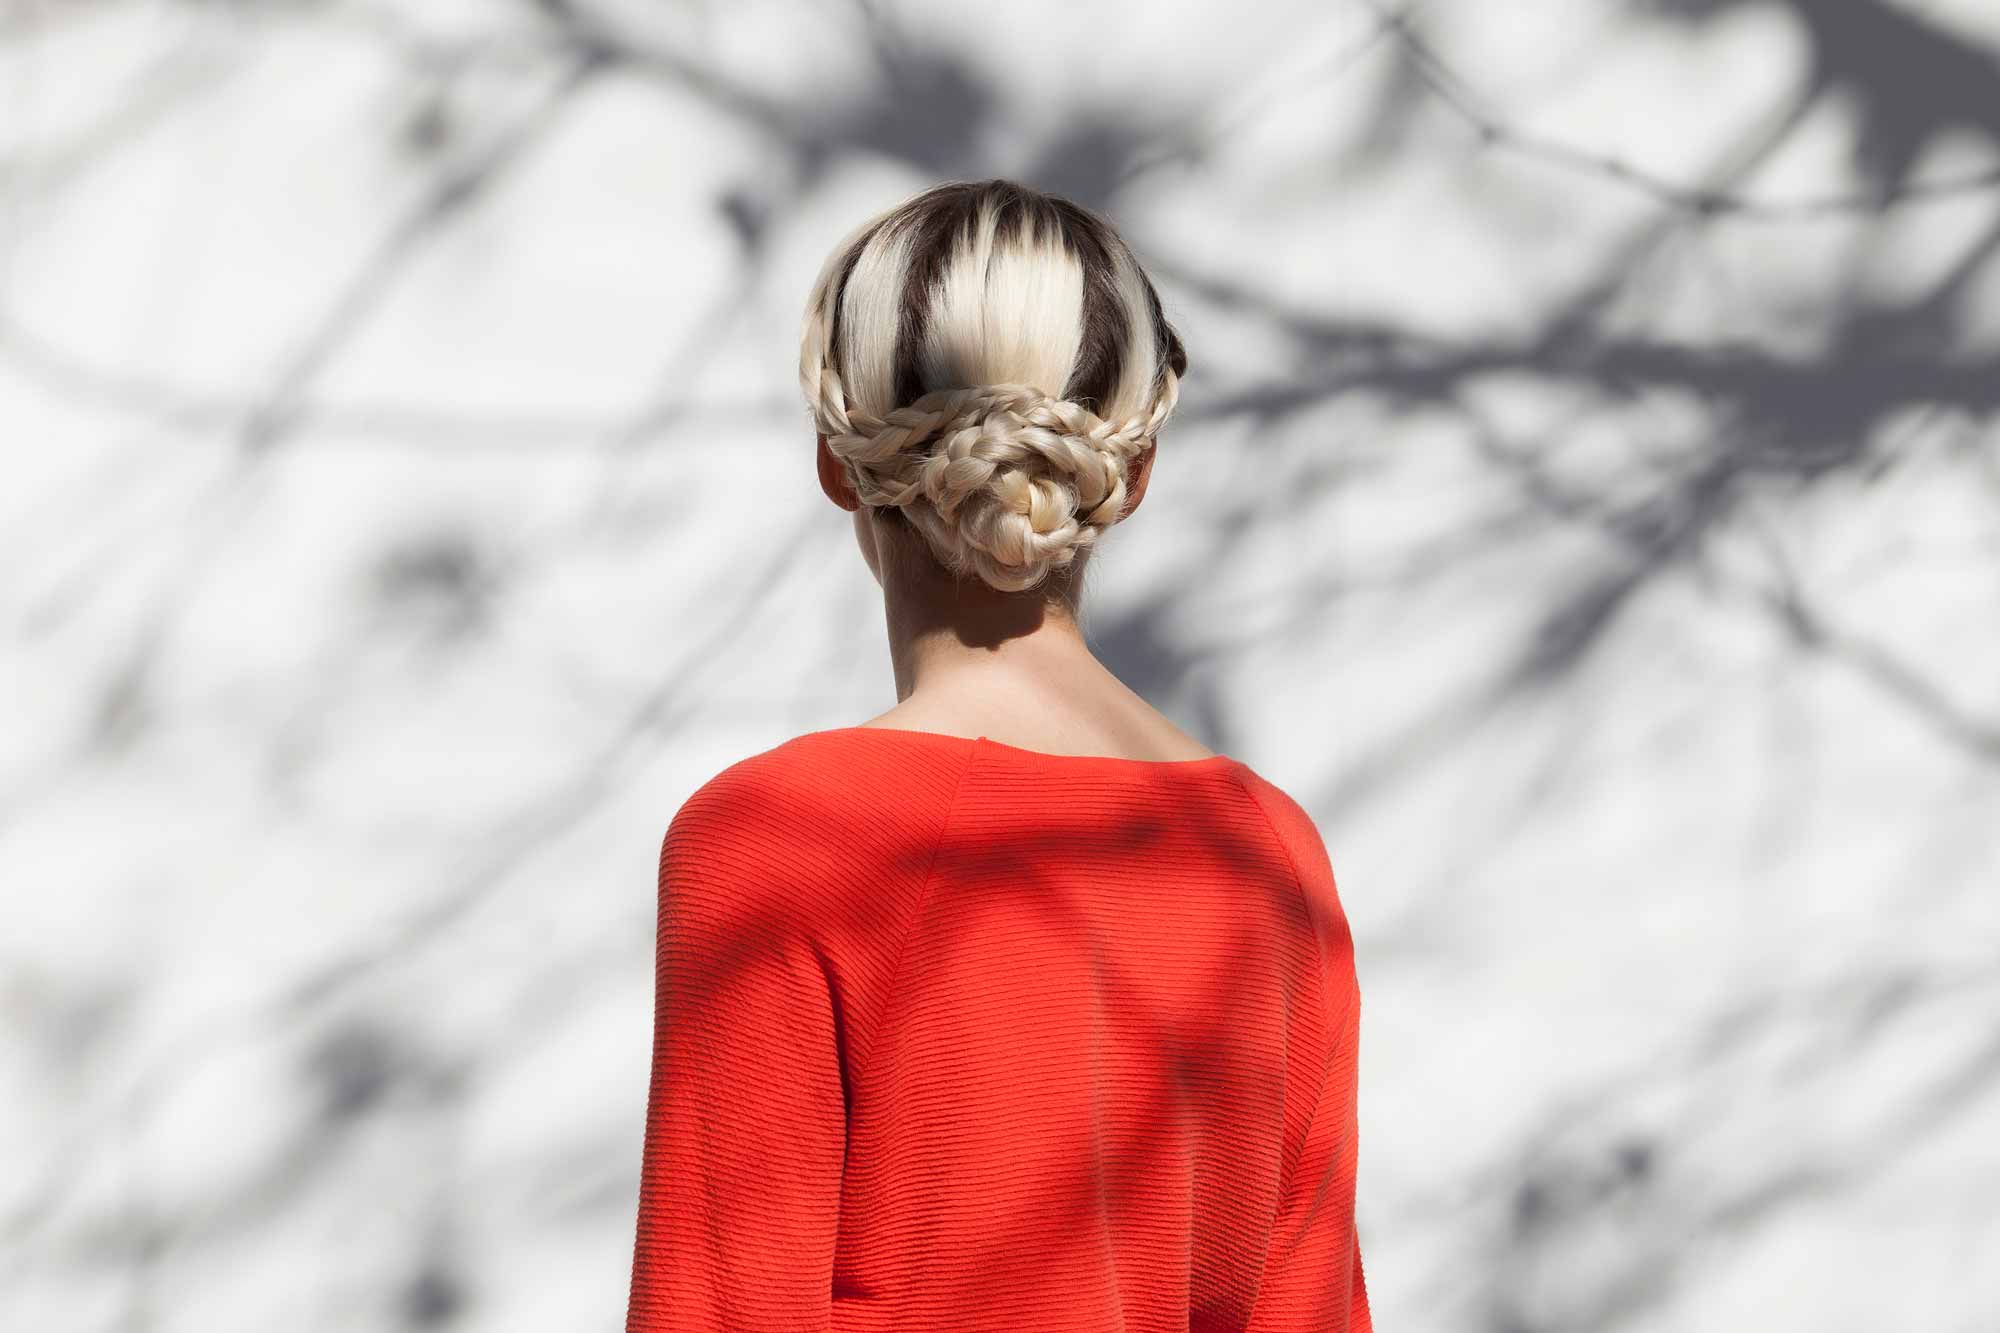 back shot of a blonde woman with her hair in a low braided snake bun wearing a red top